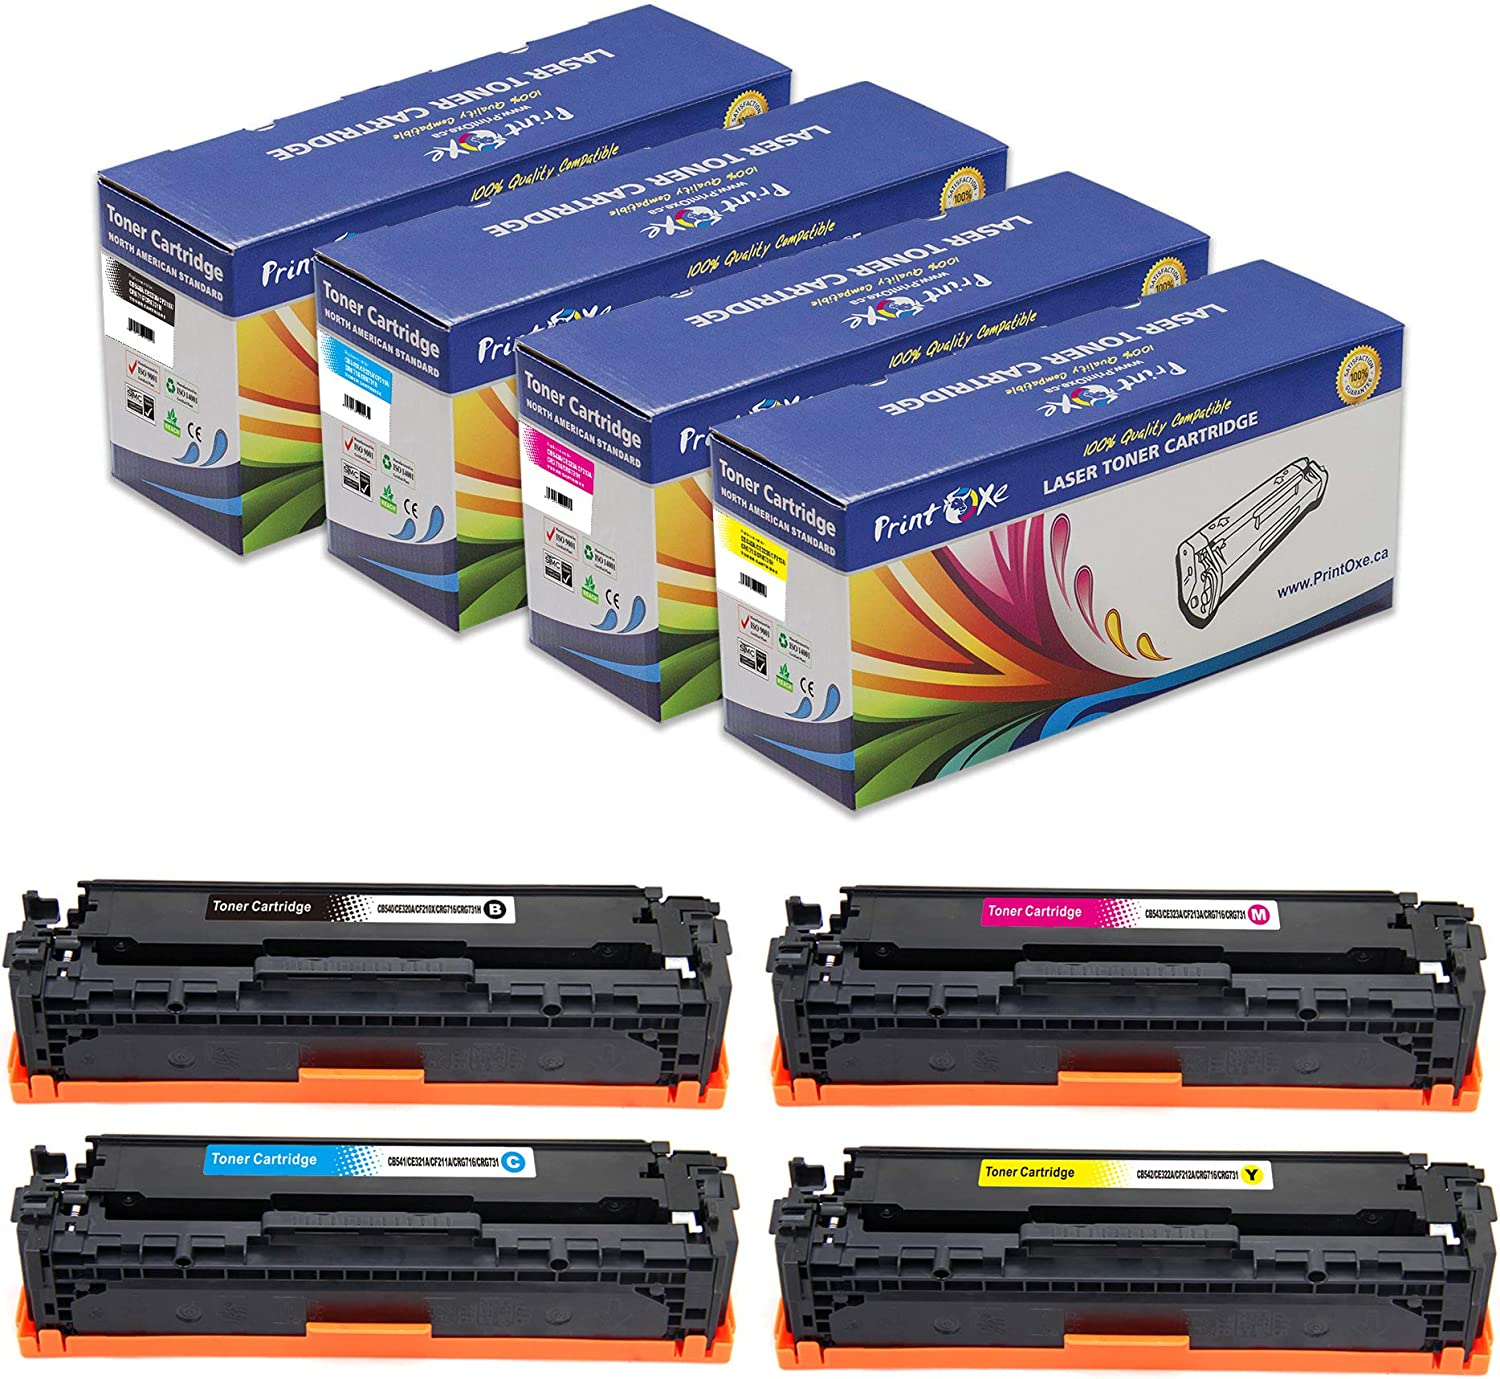 CM1415FNW; CP1525 Magenta 128A Works with: Color Laserjet CM1415 Ink /& Toner USA Compatible Toner Replacement for HP CE323A CP1525NW CM1415FN